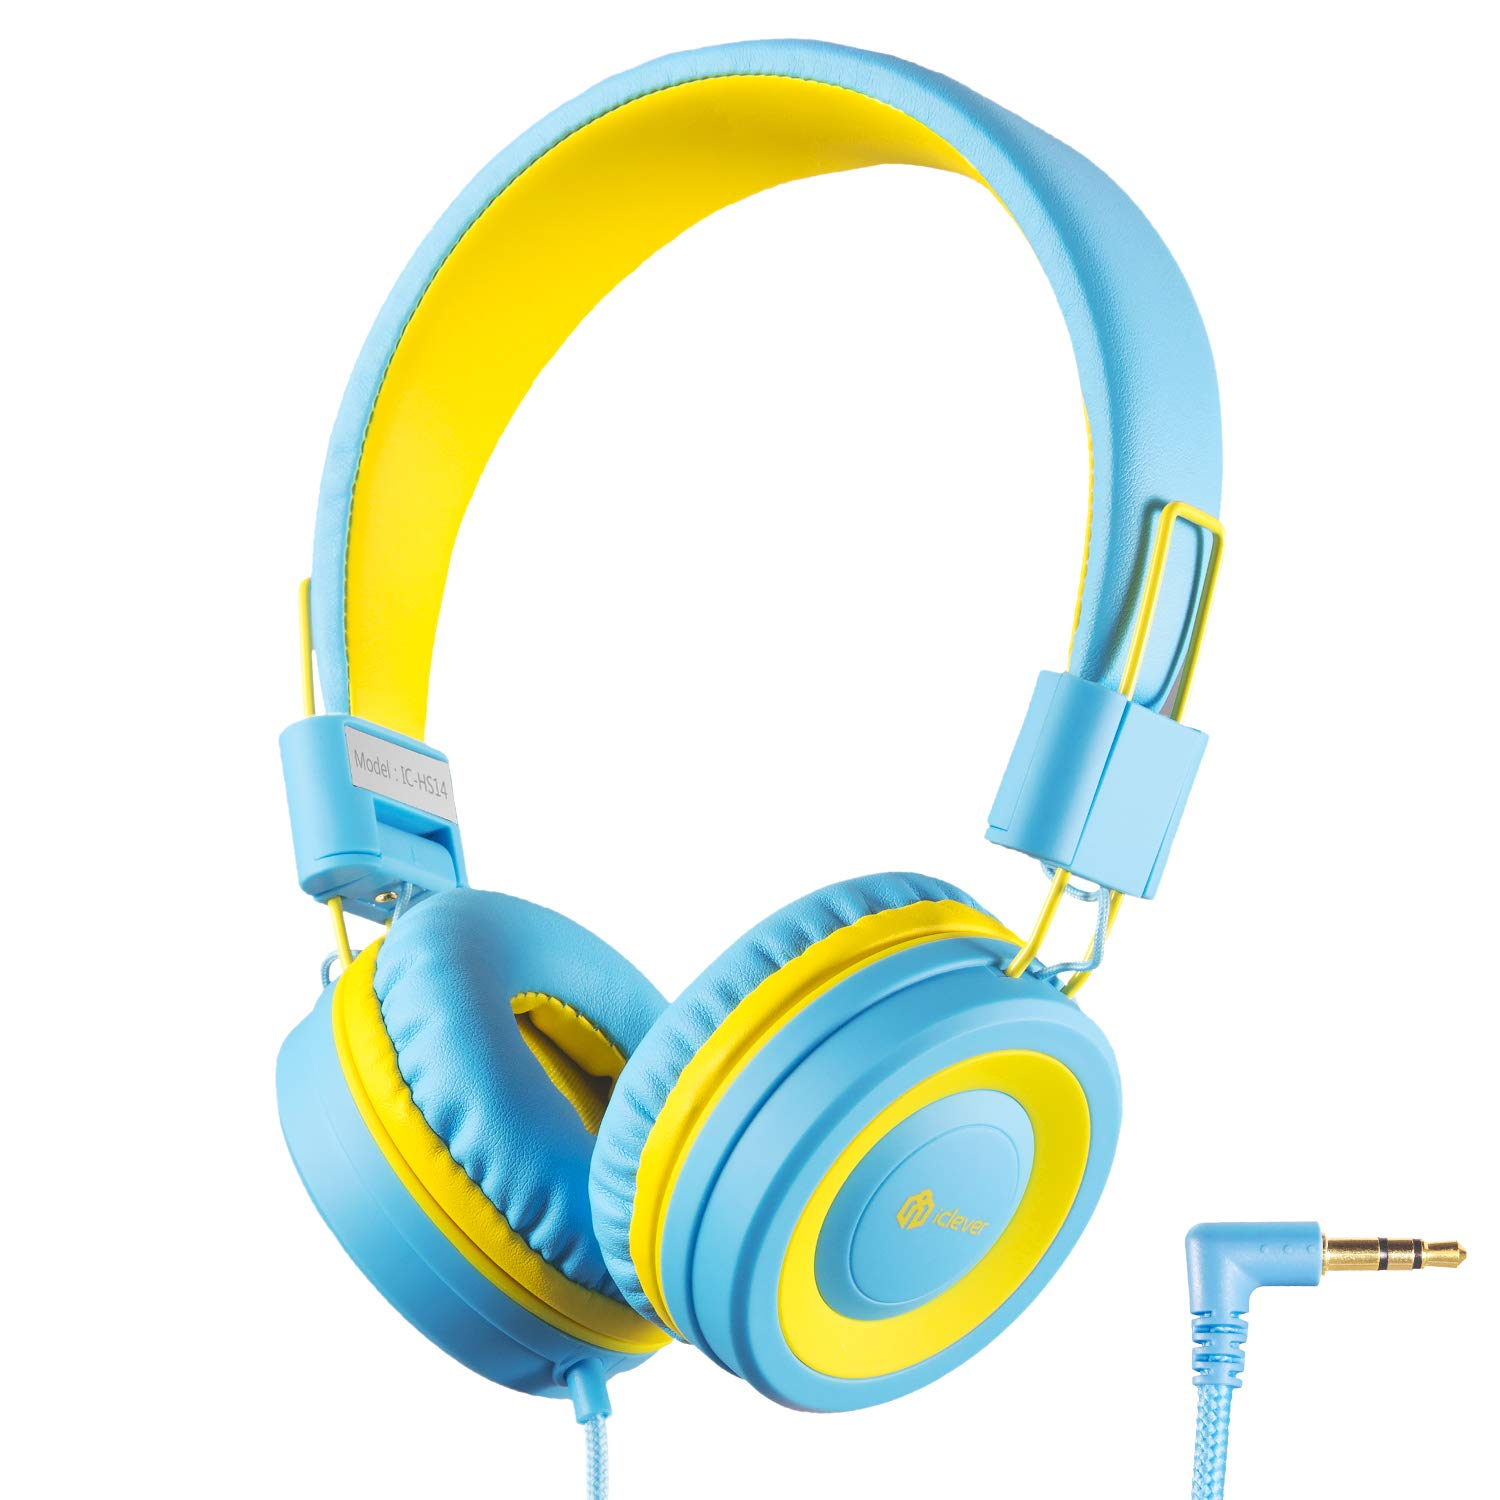 f8ca8a9f66d iClever Kids Headphones - Wired Headphones Kids, Adjustable Headband,  Stereo Sound, Foldable, Untangled Wires, 3.5mm AUX Jack, 94dB Volume  Limited ...